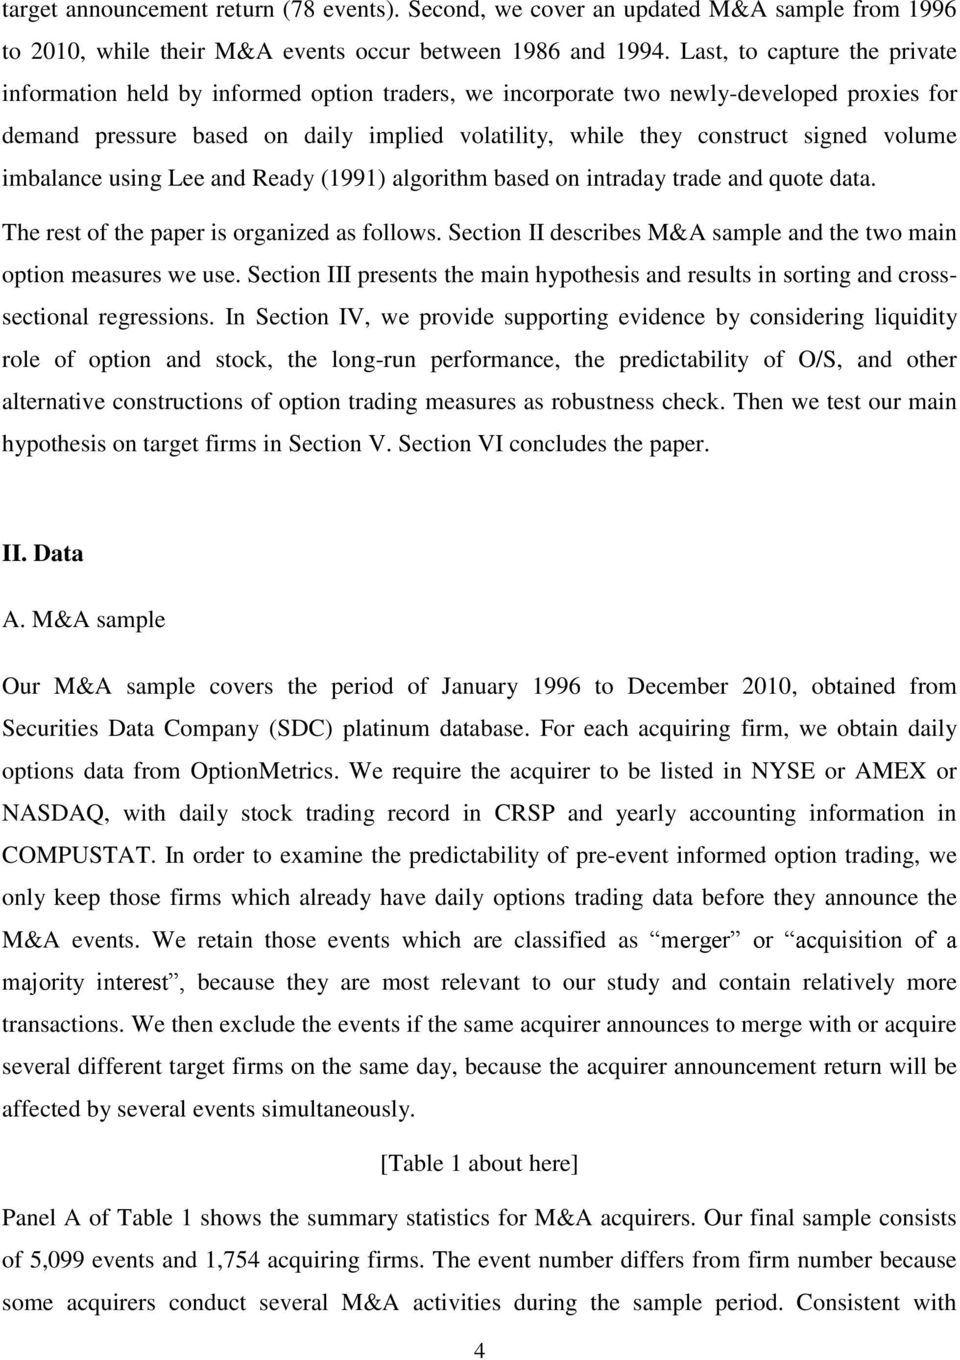 mbalance usng Lee and Ready (1991) algorthm based on ntraday trade and quote data. The rest of the paper s organzed as follows. Secton II descrbes M&A sample and the two man opton measures we use.